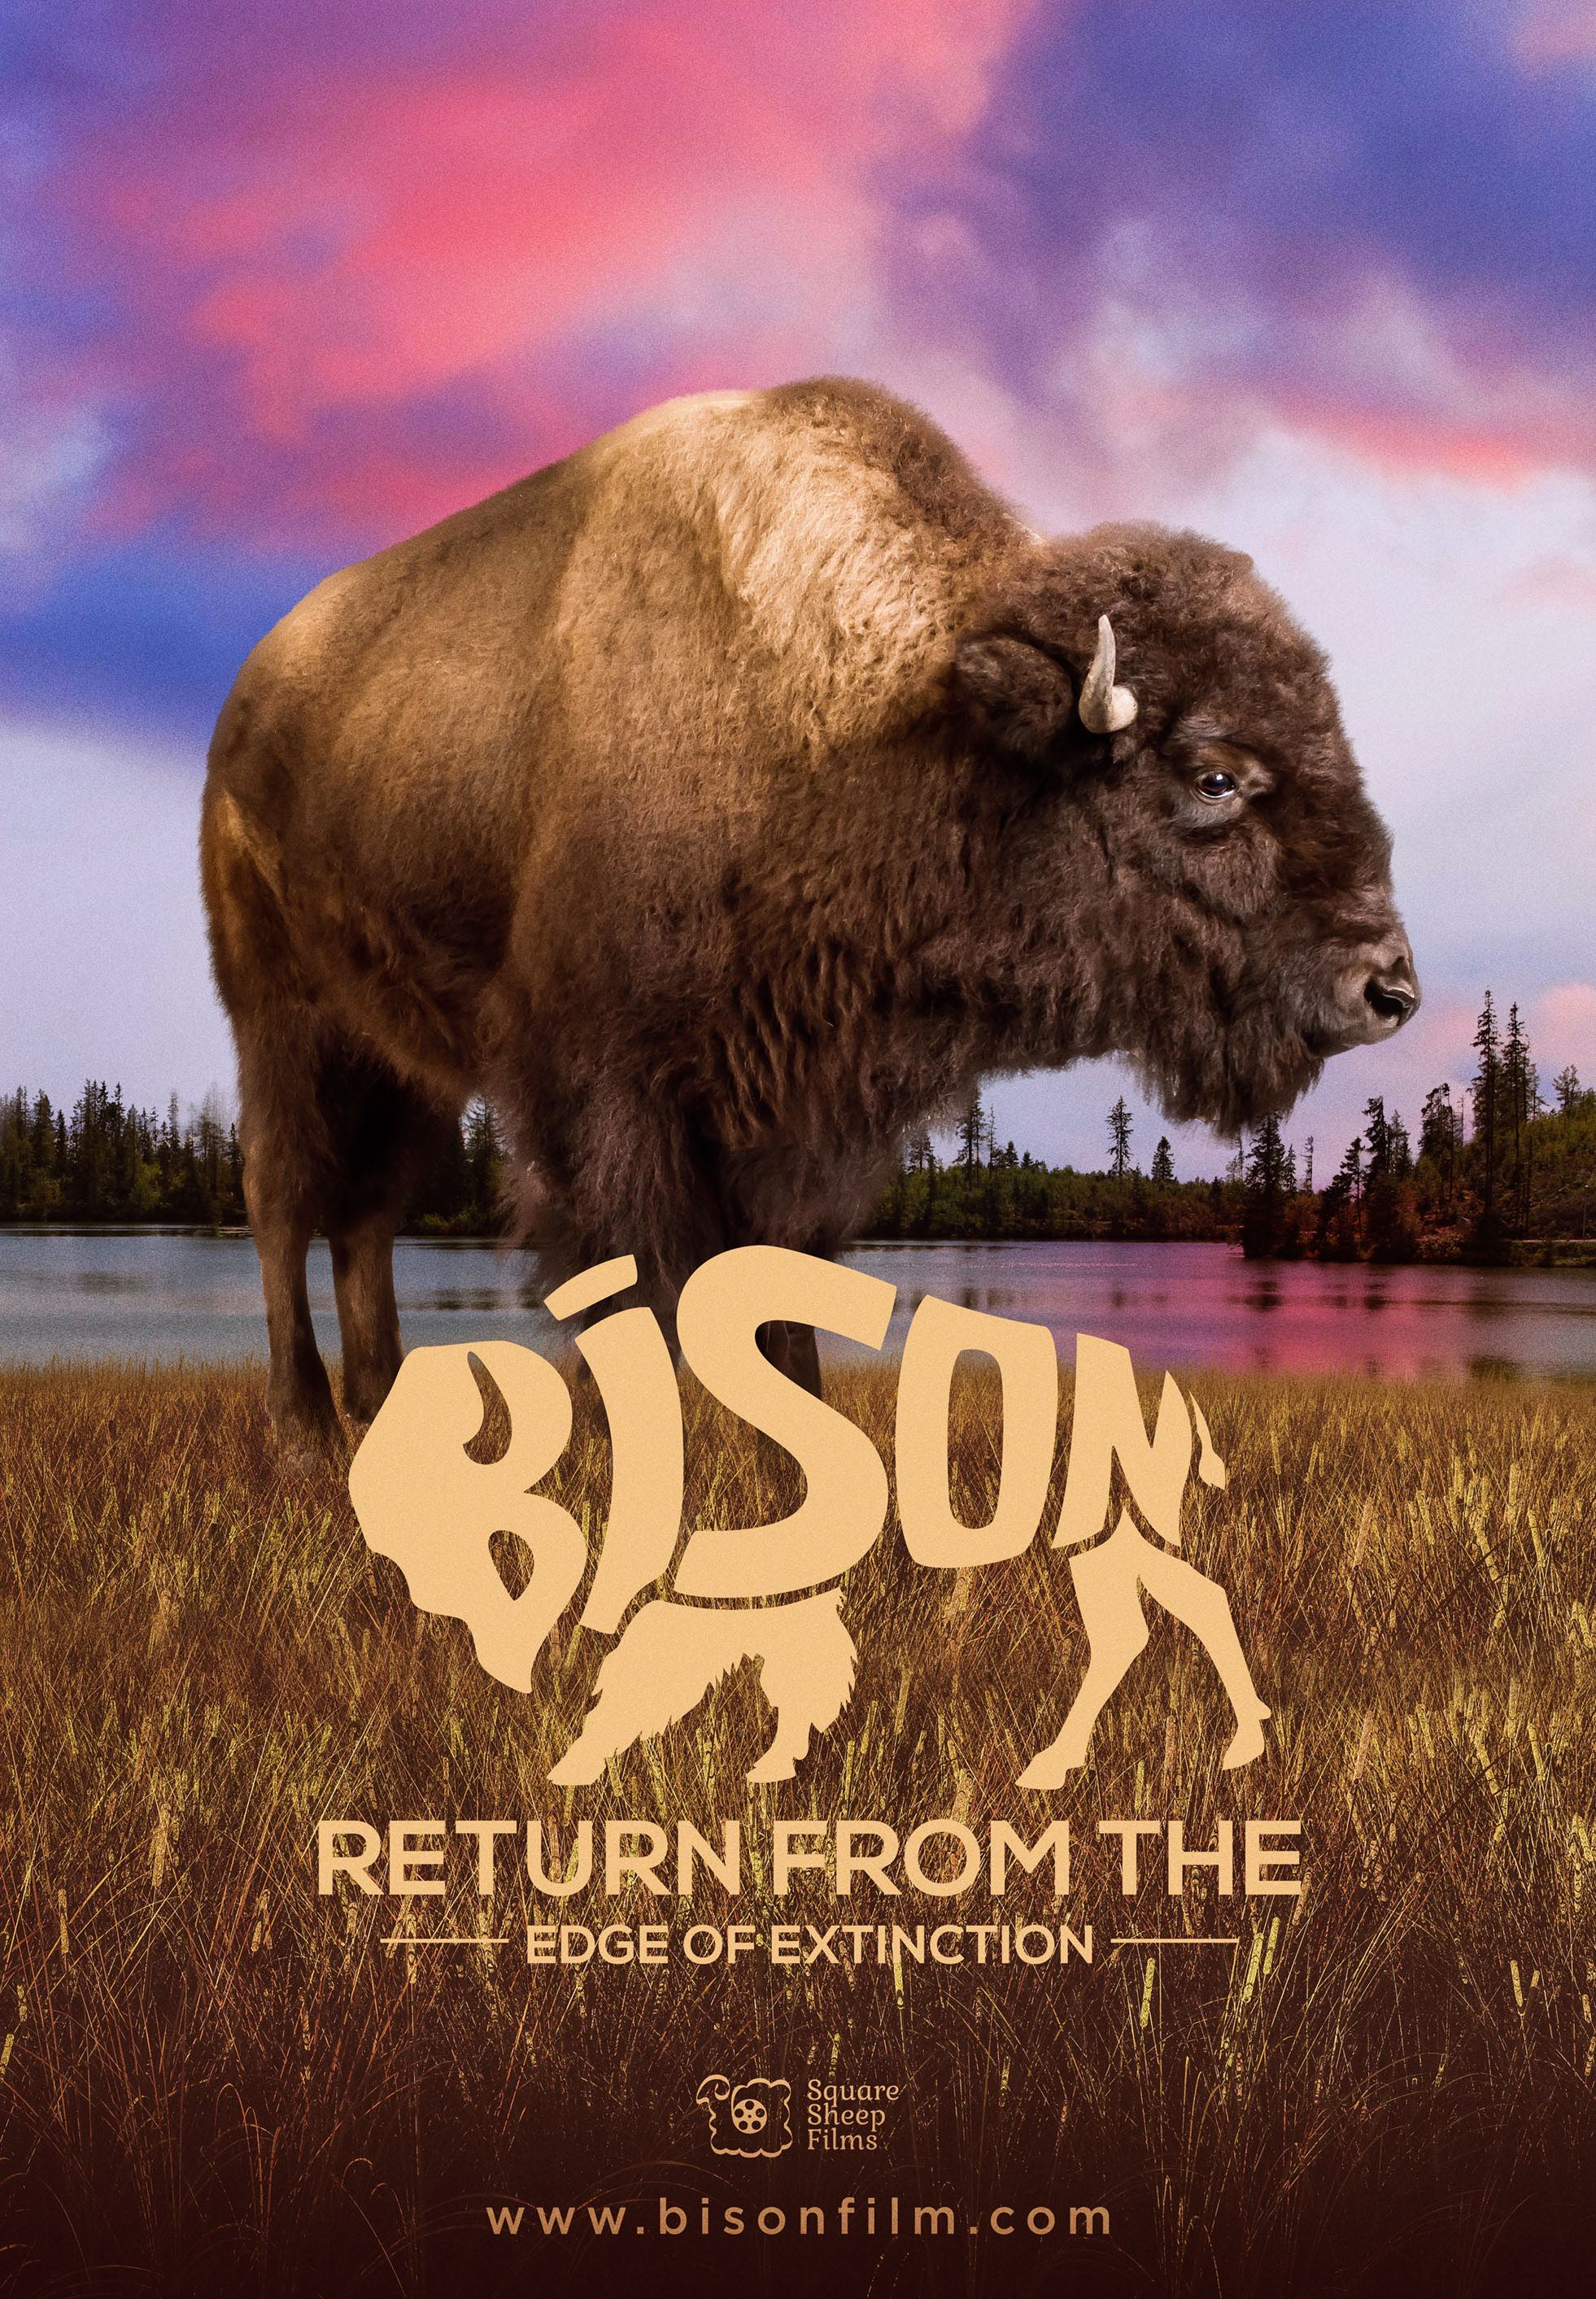 BisonReturn_27x39-B2-Final-Lores low